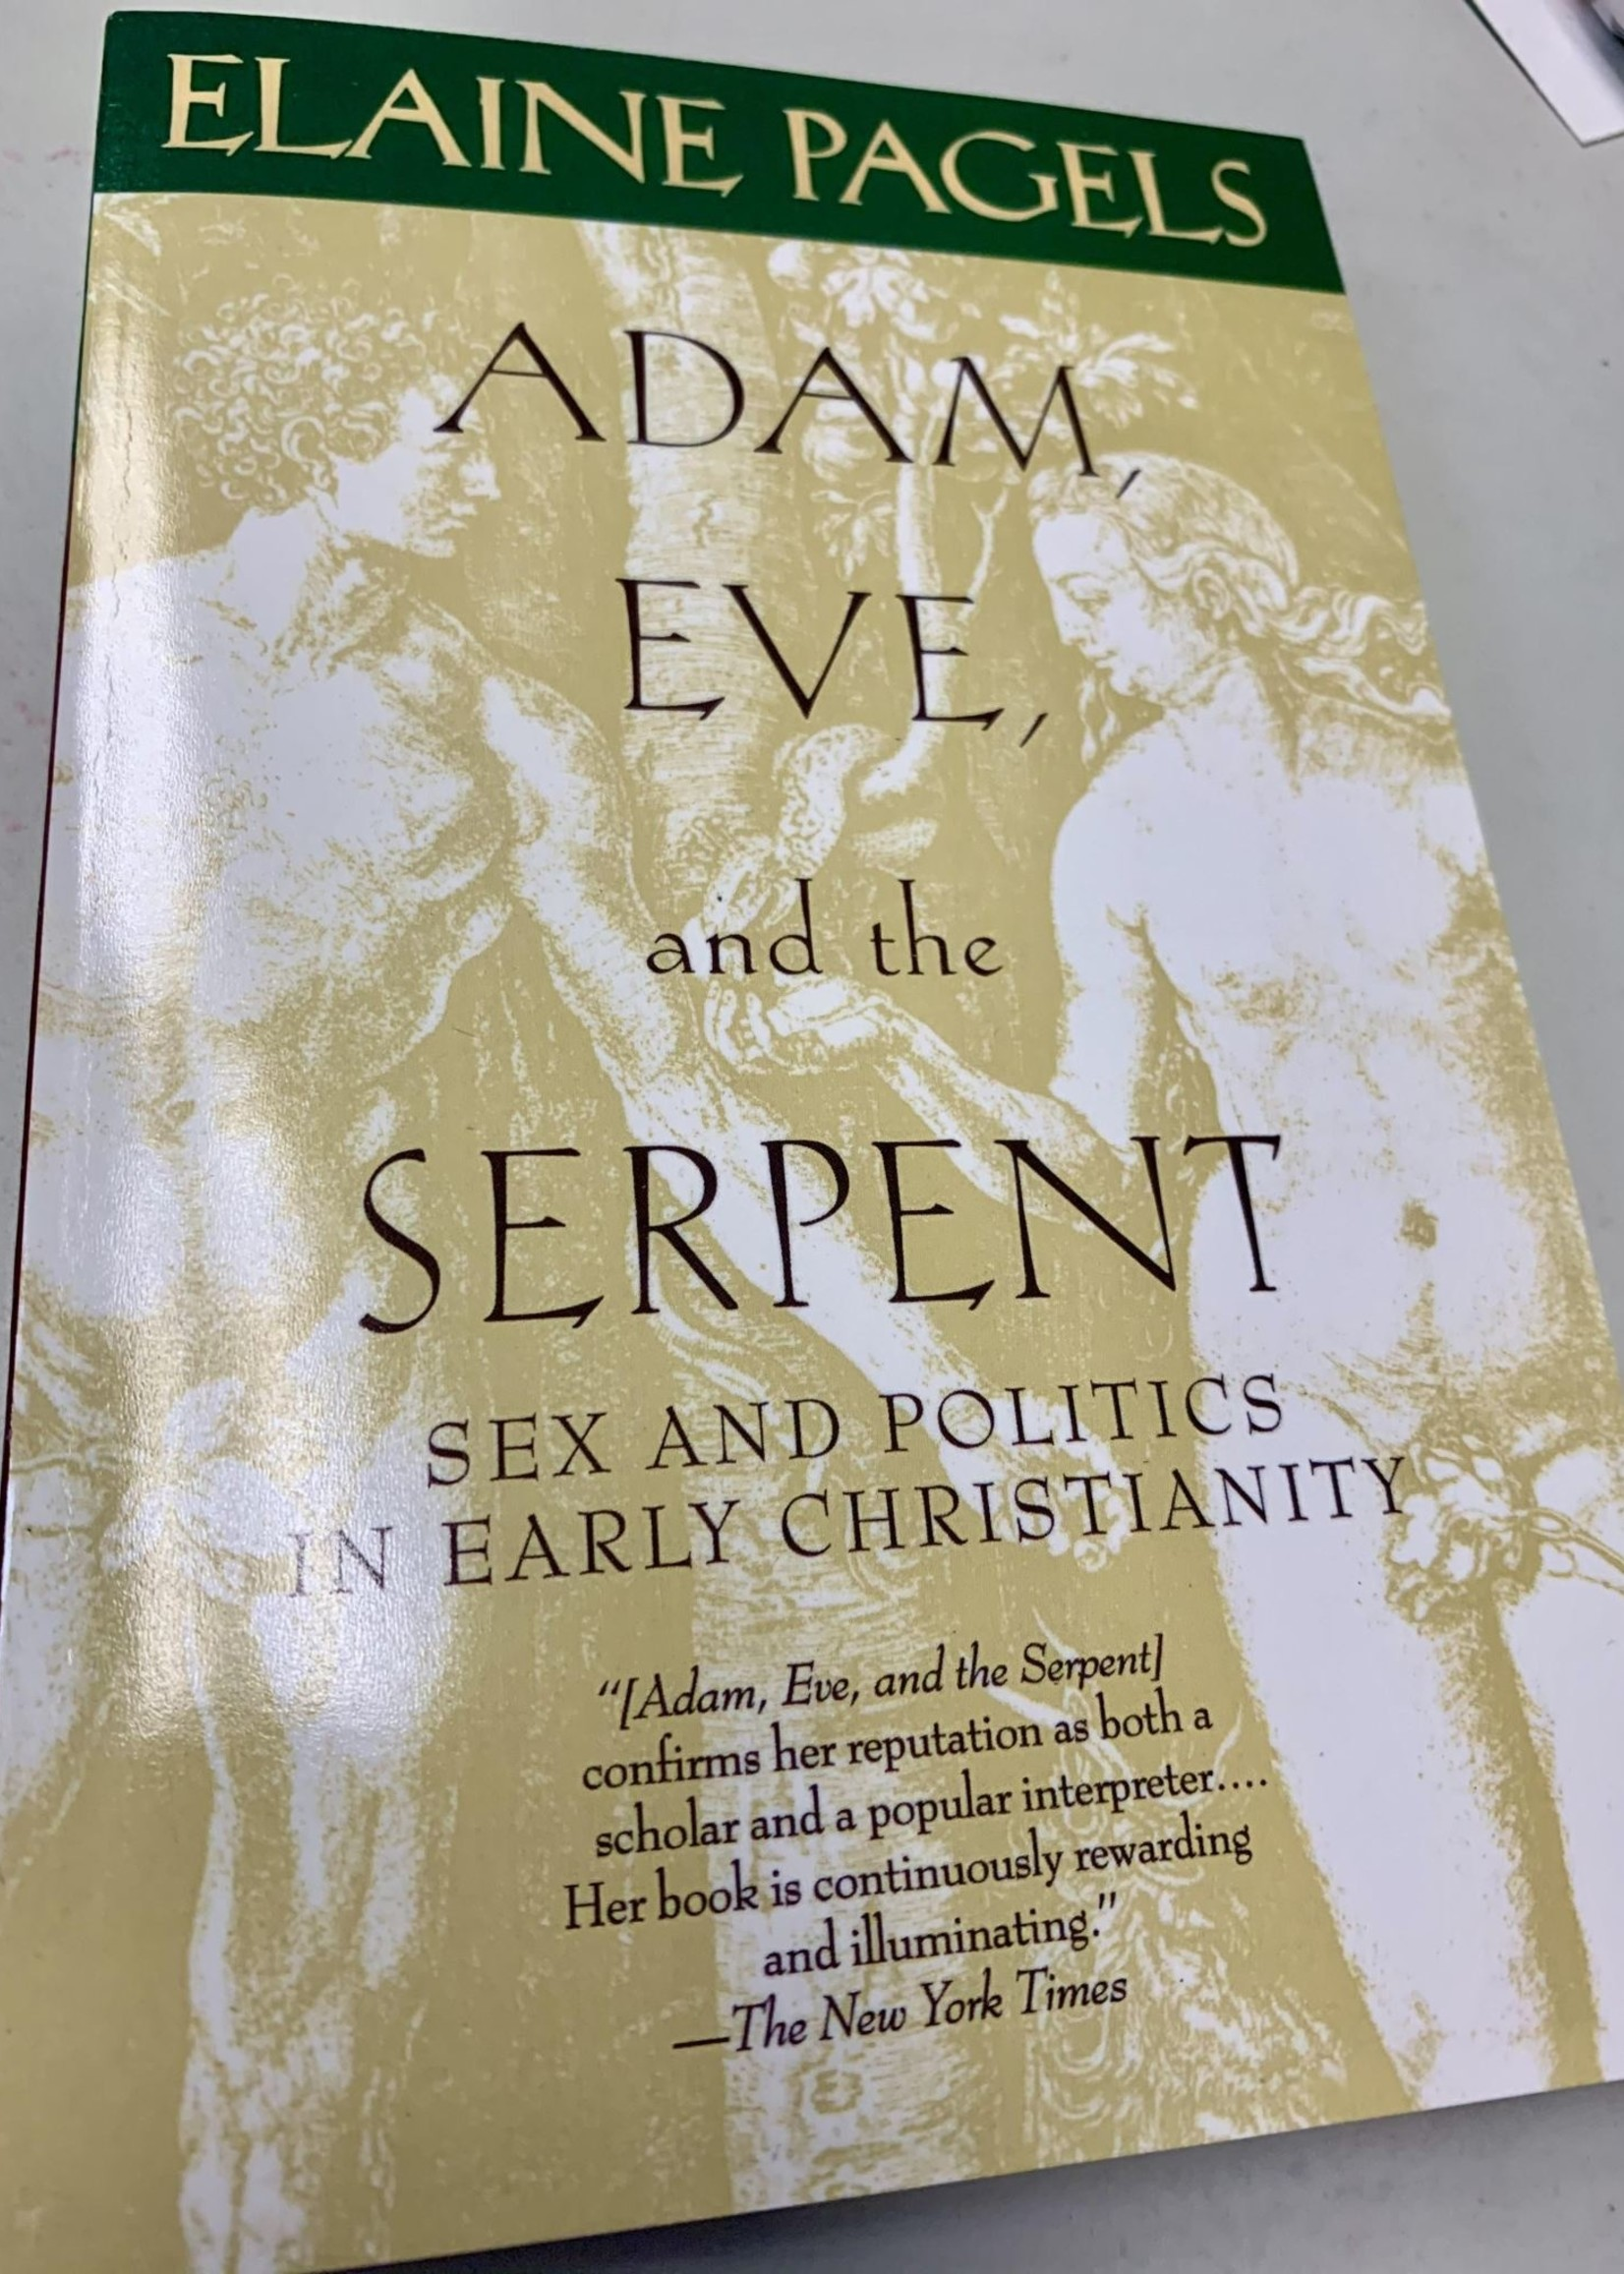 Adam, Eve, and the Serpent SEX AND POLITICS IN EARLY CHRISTIANITY - By ELAINE PAGELS